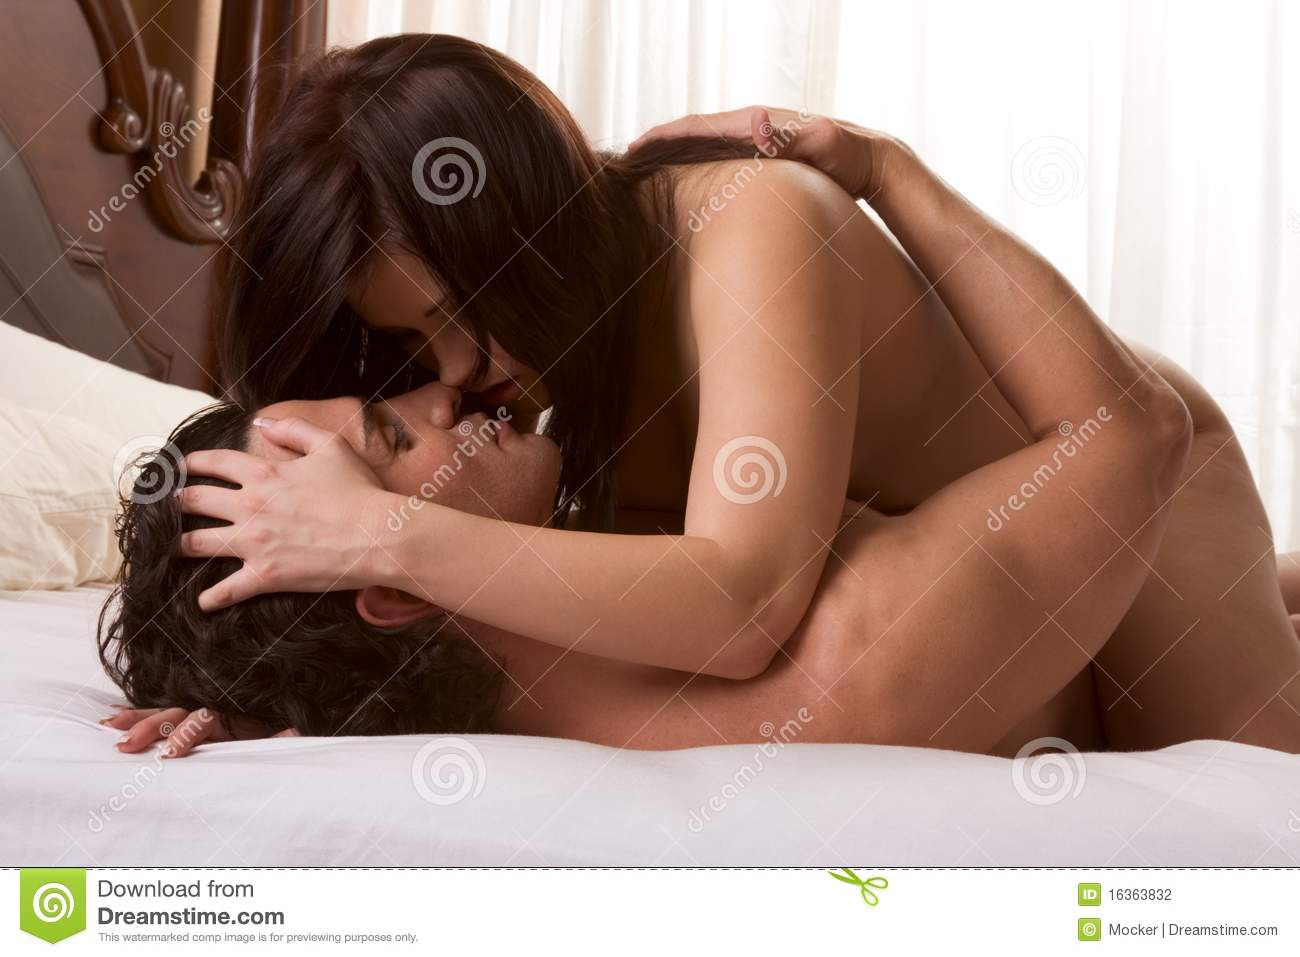 nude and naked couple romance